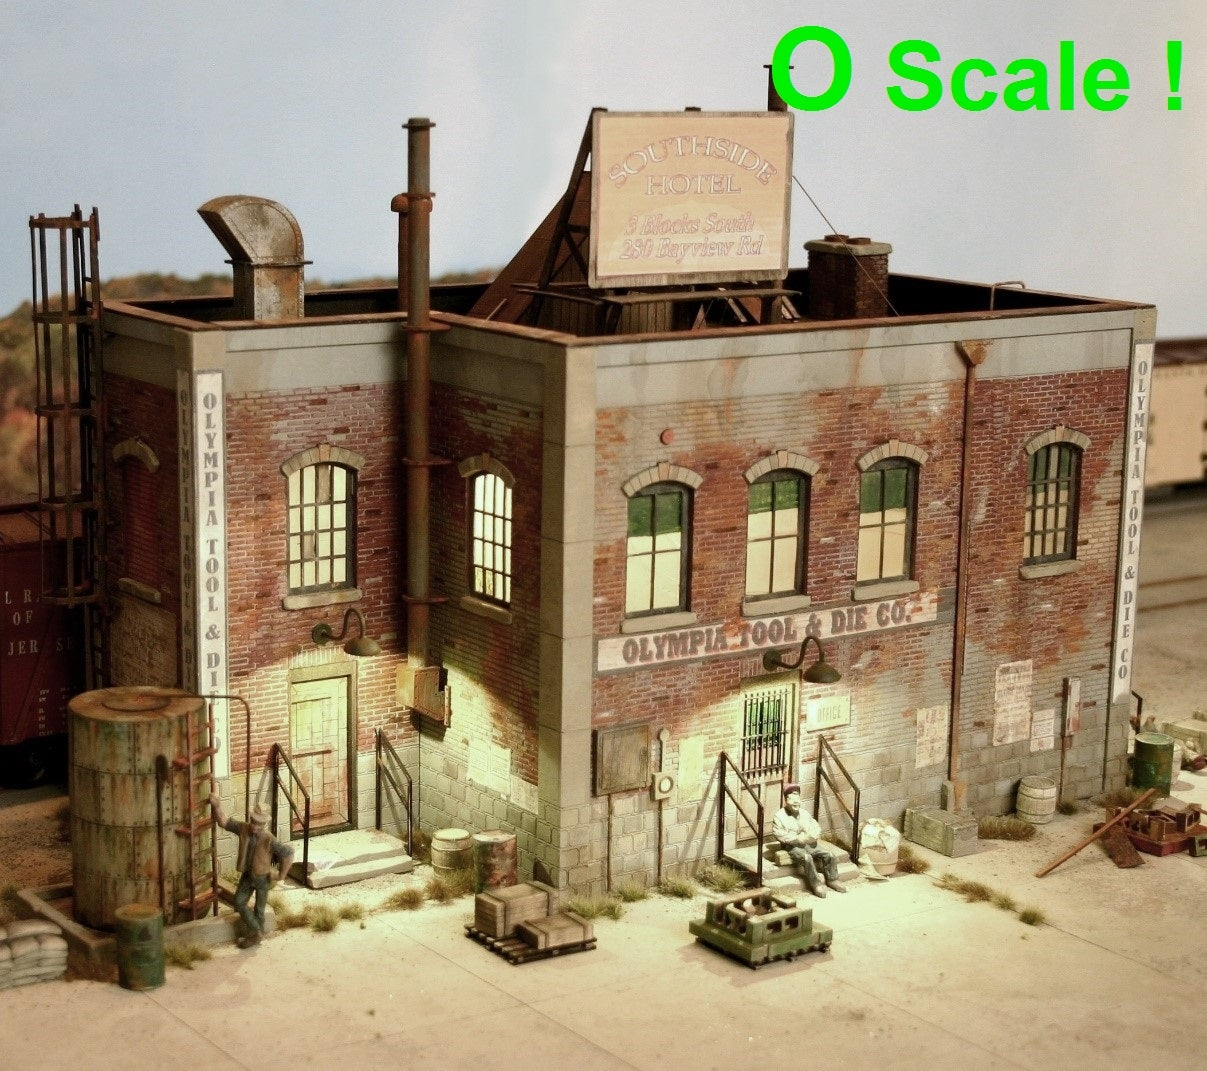 O scale Olympia Tool & Die Co. - ITLA